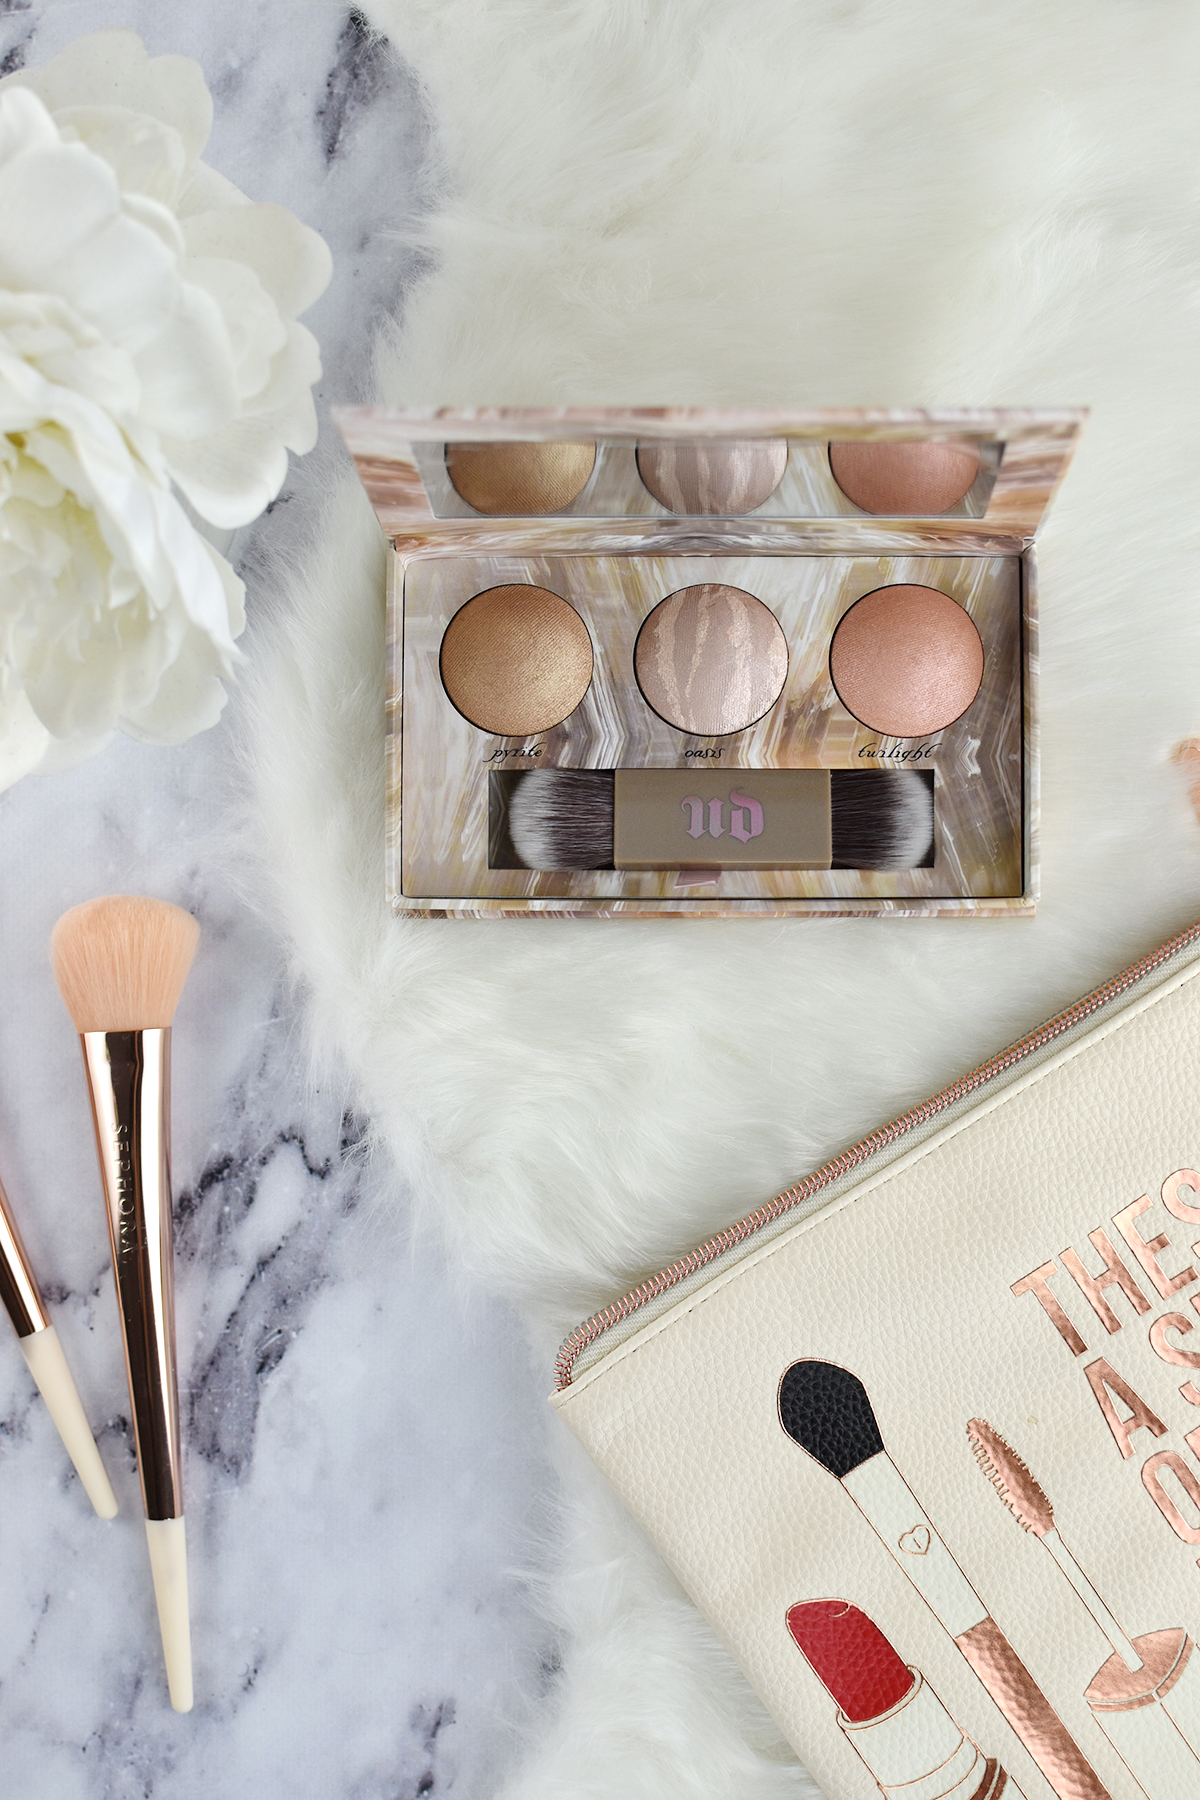 Urban Decay Naked Illuminated Trio review and swatches | oliveandivyblog.com